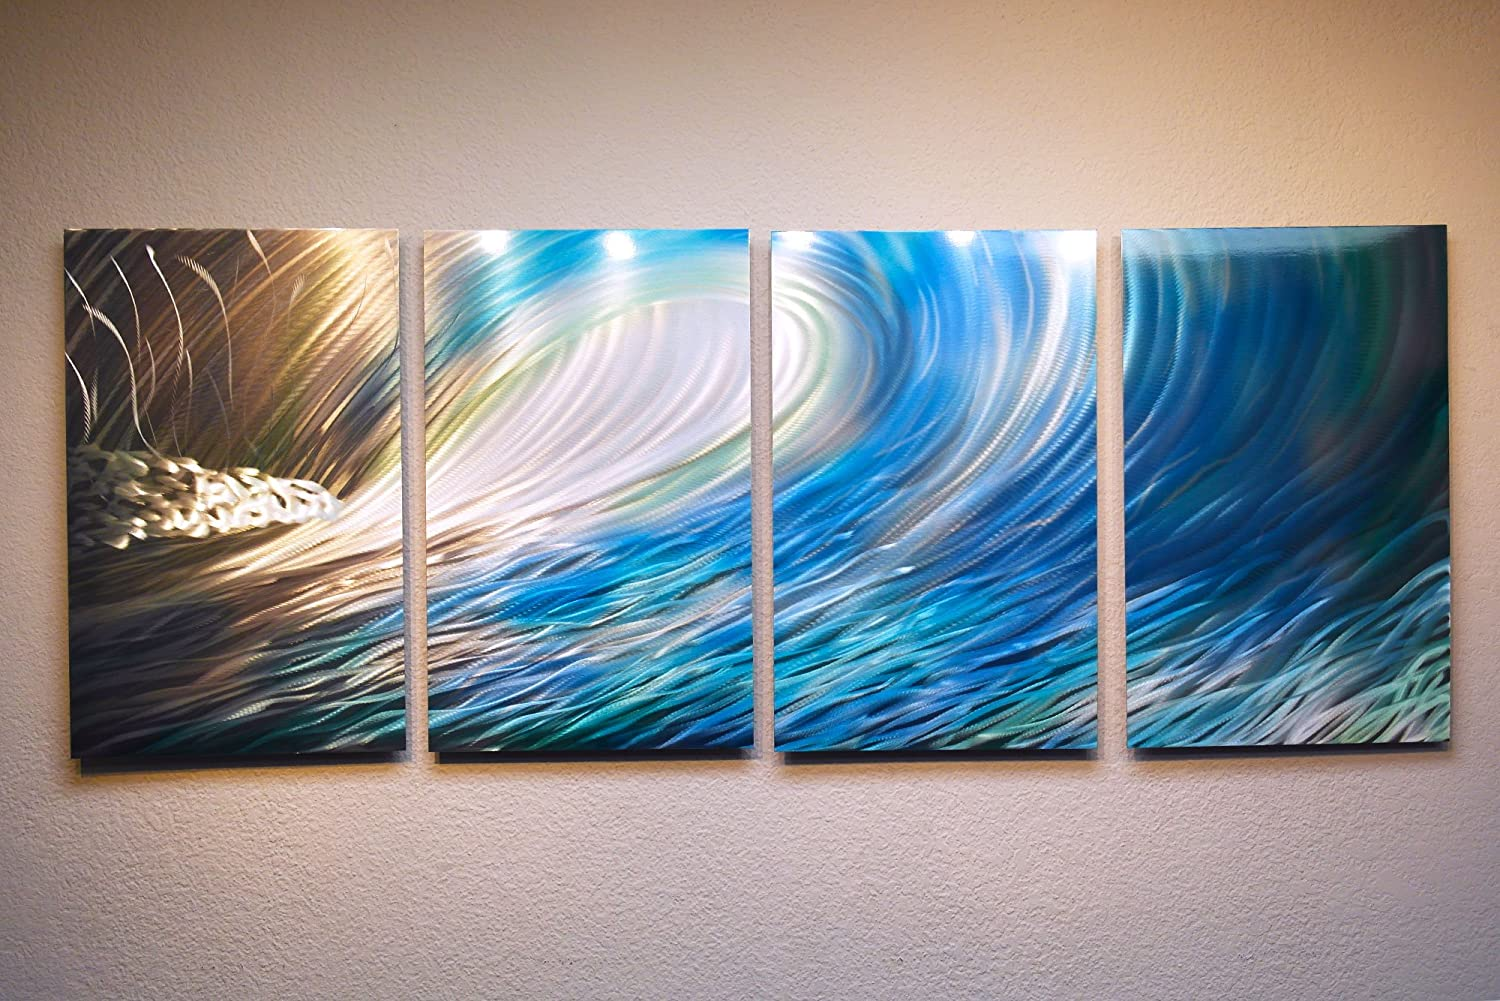 Amazon com miles shay wave by metal wall art modern home decor abstract artwork sculpture home kitchen